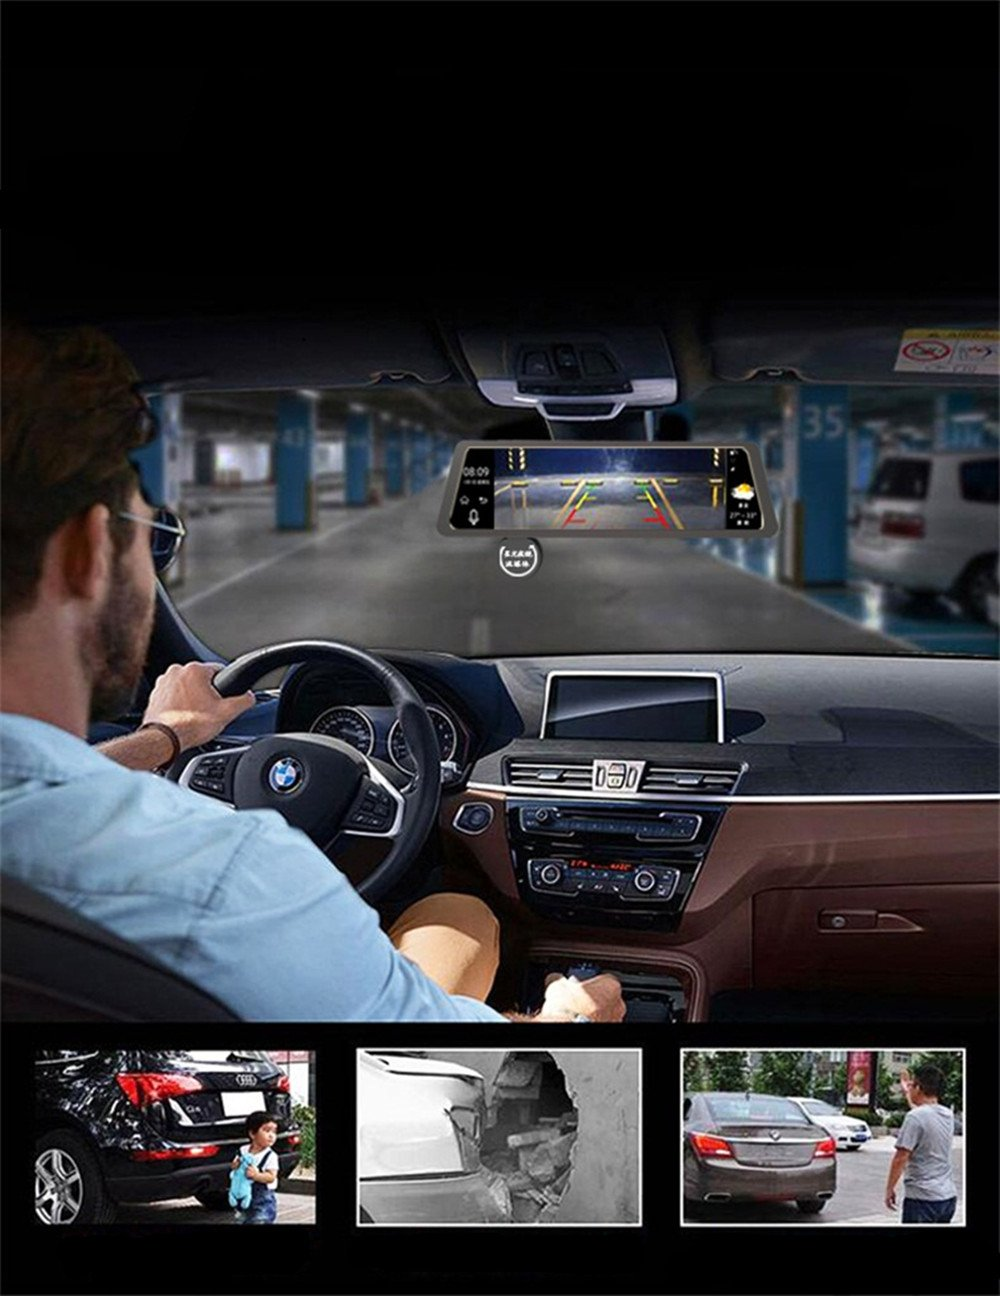 4G Car Dash Cam 10.0'' Touch GPS Navigation WIFI Bluetooth Dual Lens Rearview Mirror Camera Android 5.1 Vehicle Video Recorder with Night Vision, 170-degree Wide Angle Lens with G-Senor by sunray (Image #3)